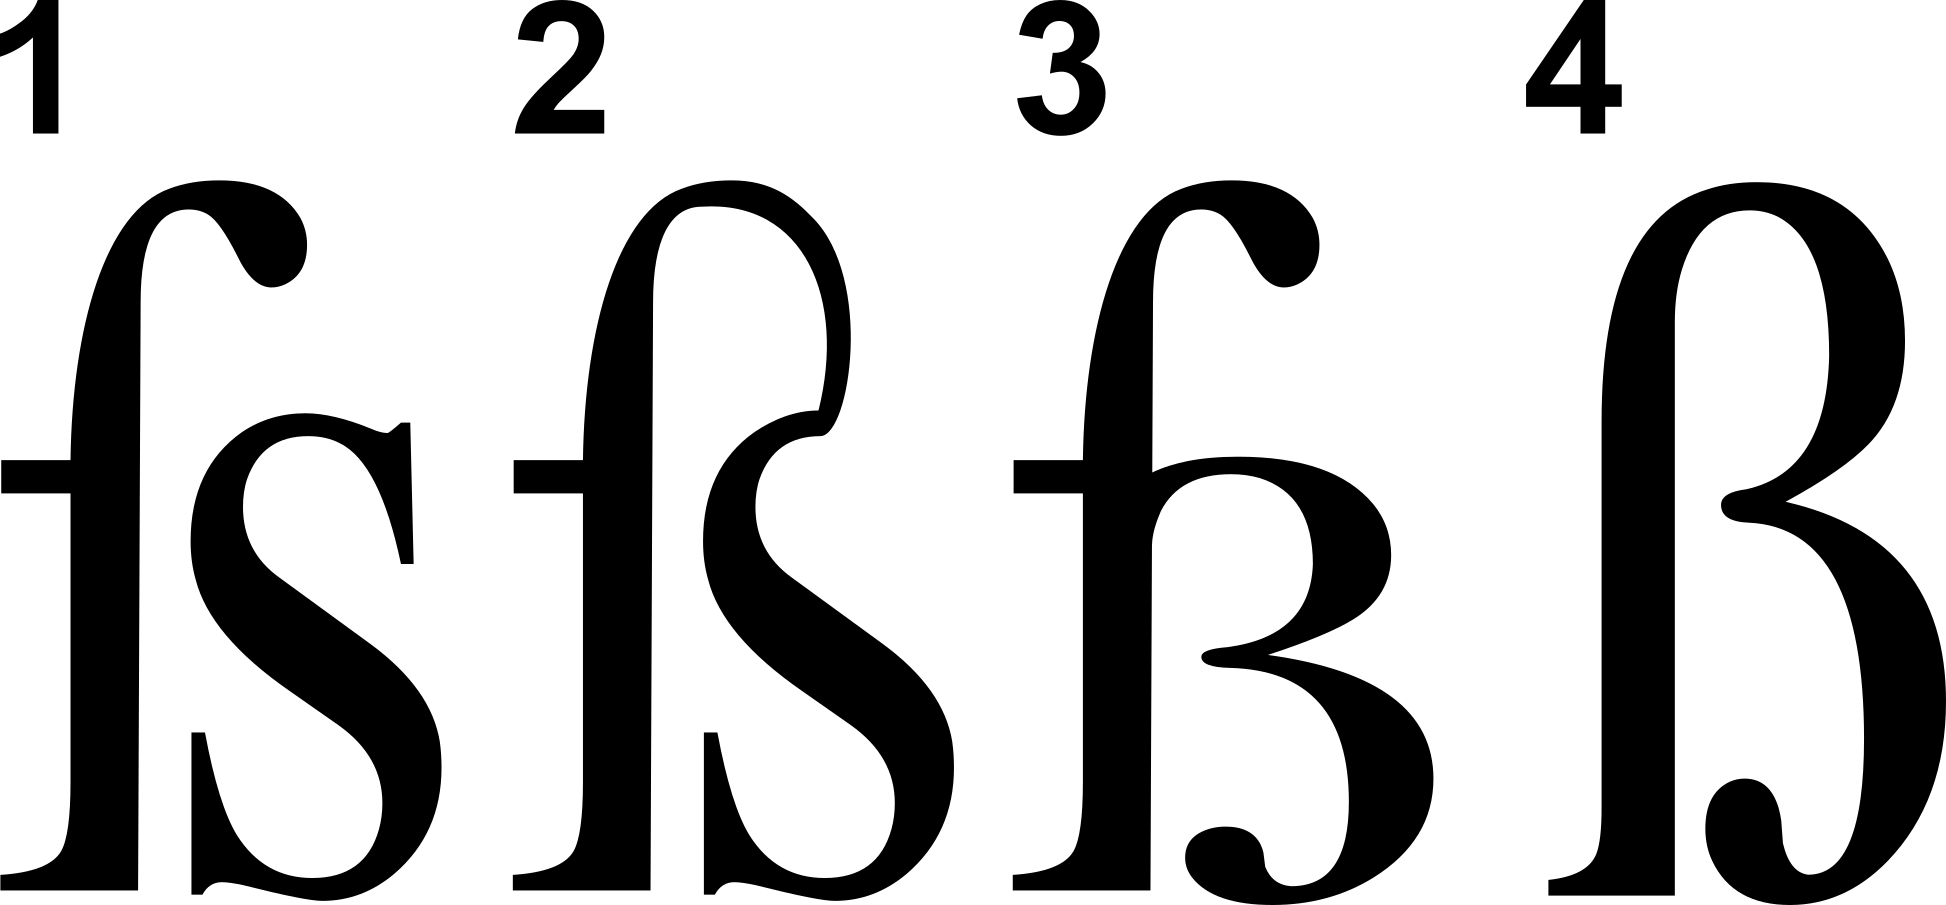 Four forms of Antiqua Eszett: 1. ſs, 2. ſs ligature, 3. ſz ligature, 4. Sulzbacher Form